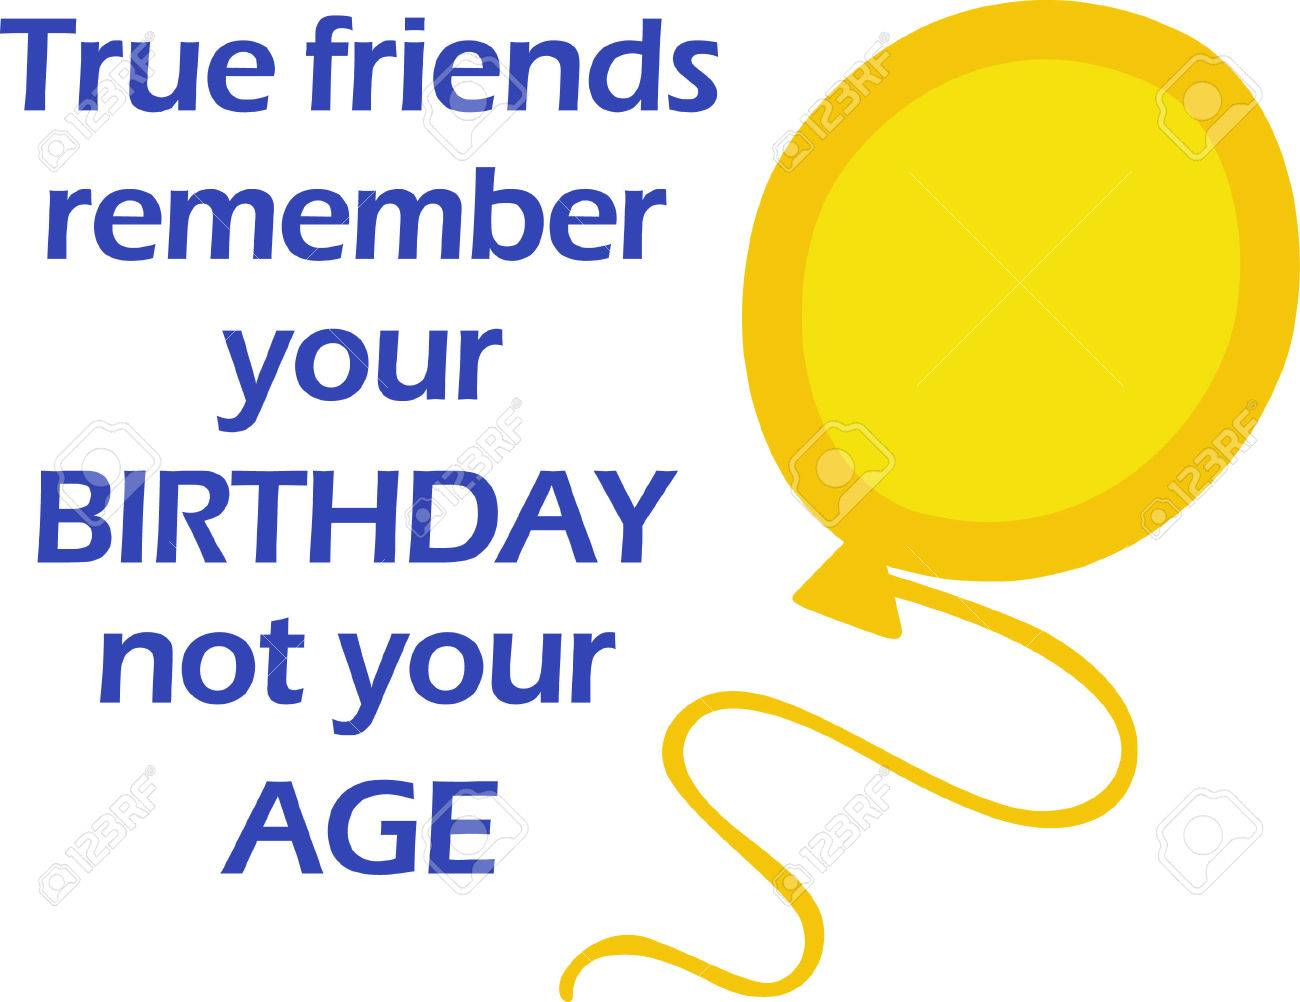 Get A True Friend Remembers Your Birthday, But Not Your Age Crafter Files